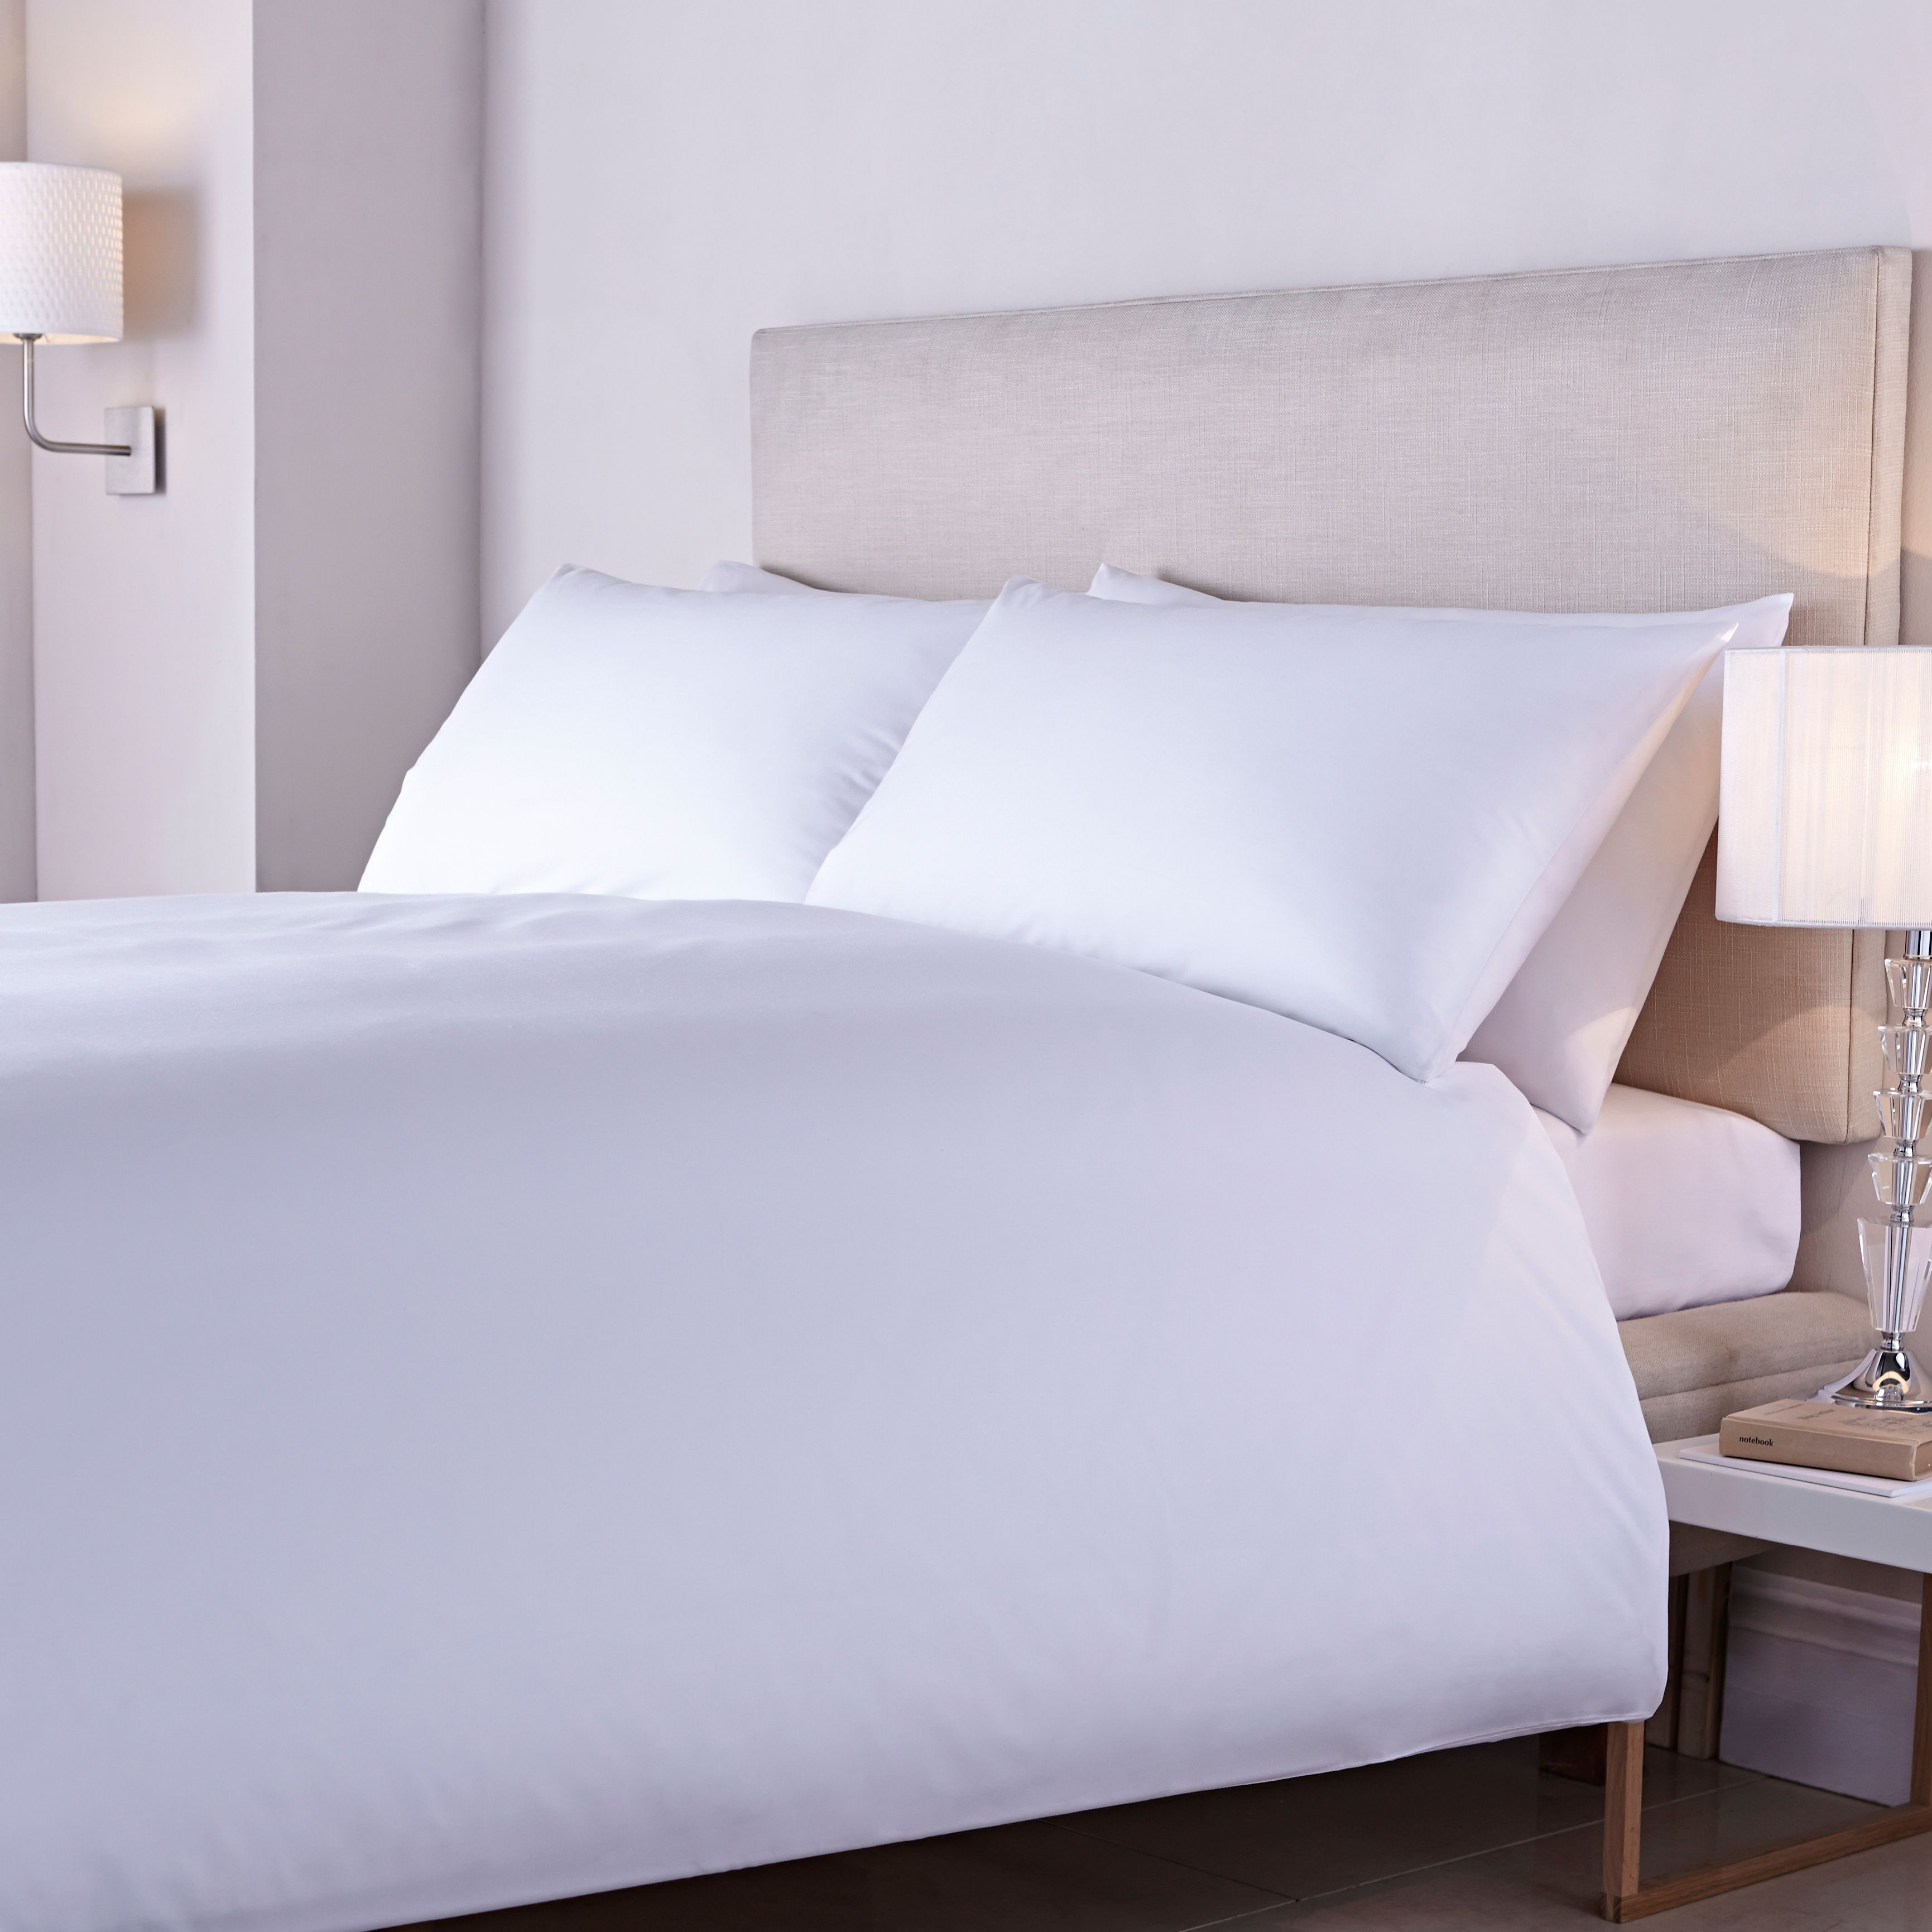 Luxury hotel collection 400tc crisp percale oxford square pillowcases house of fraser